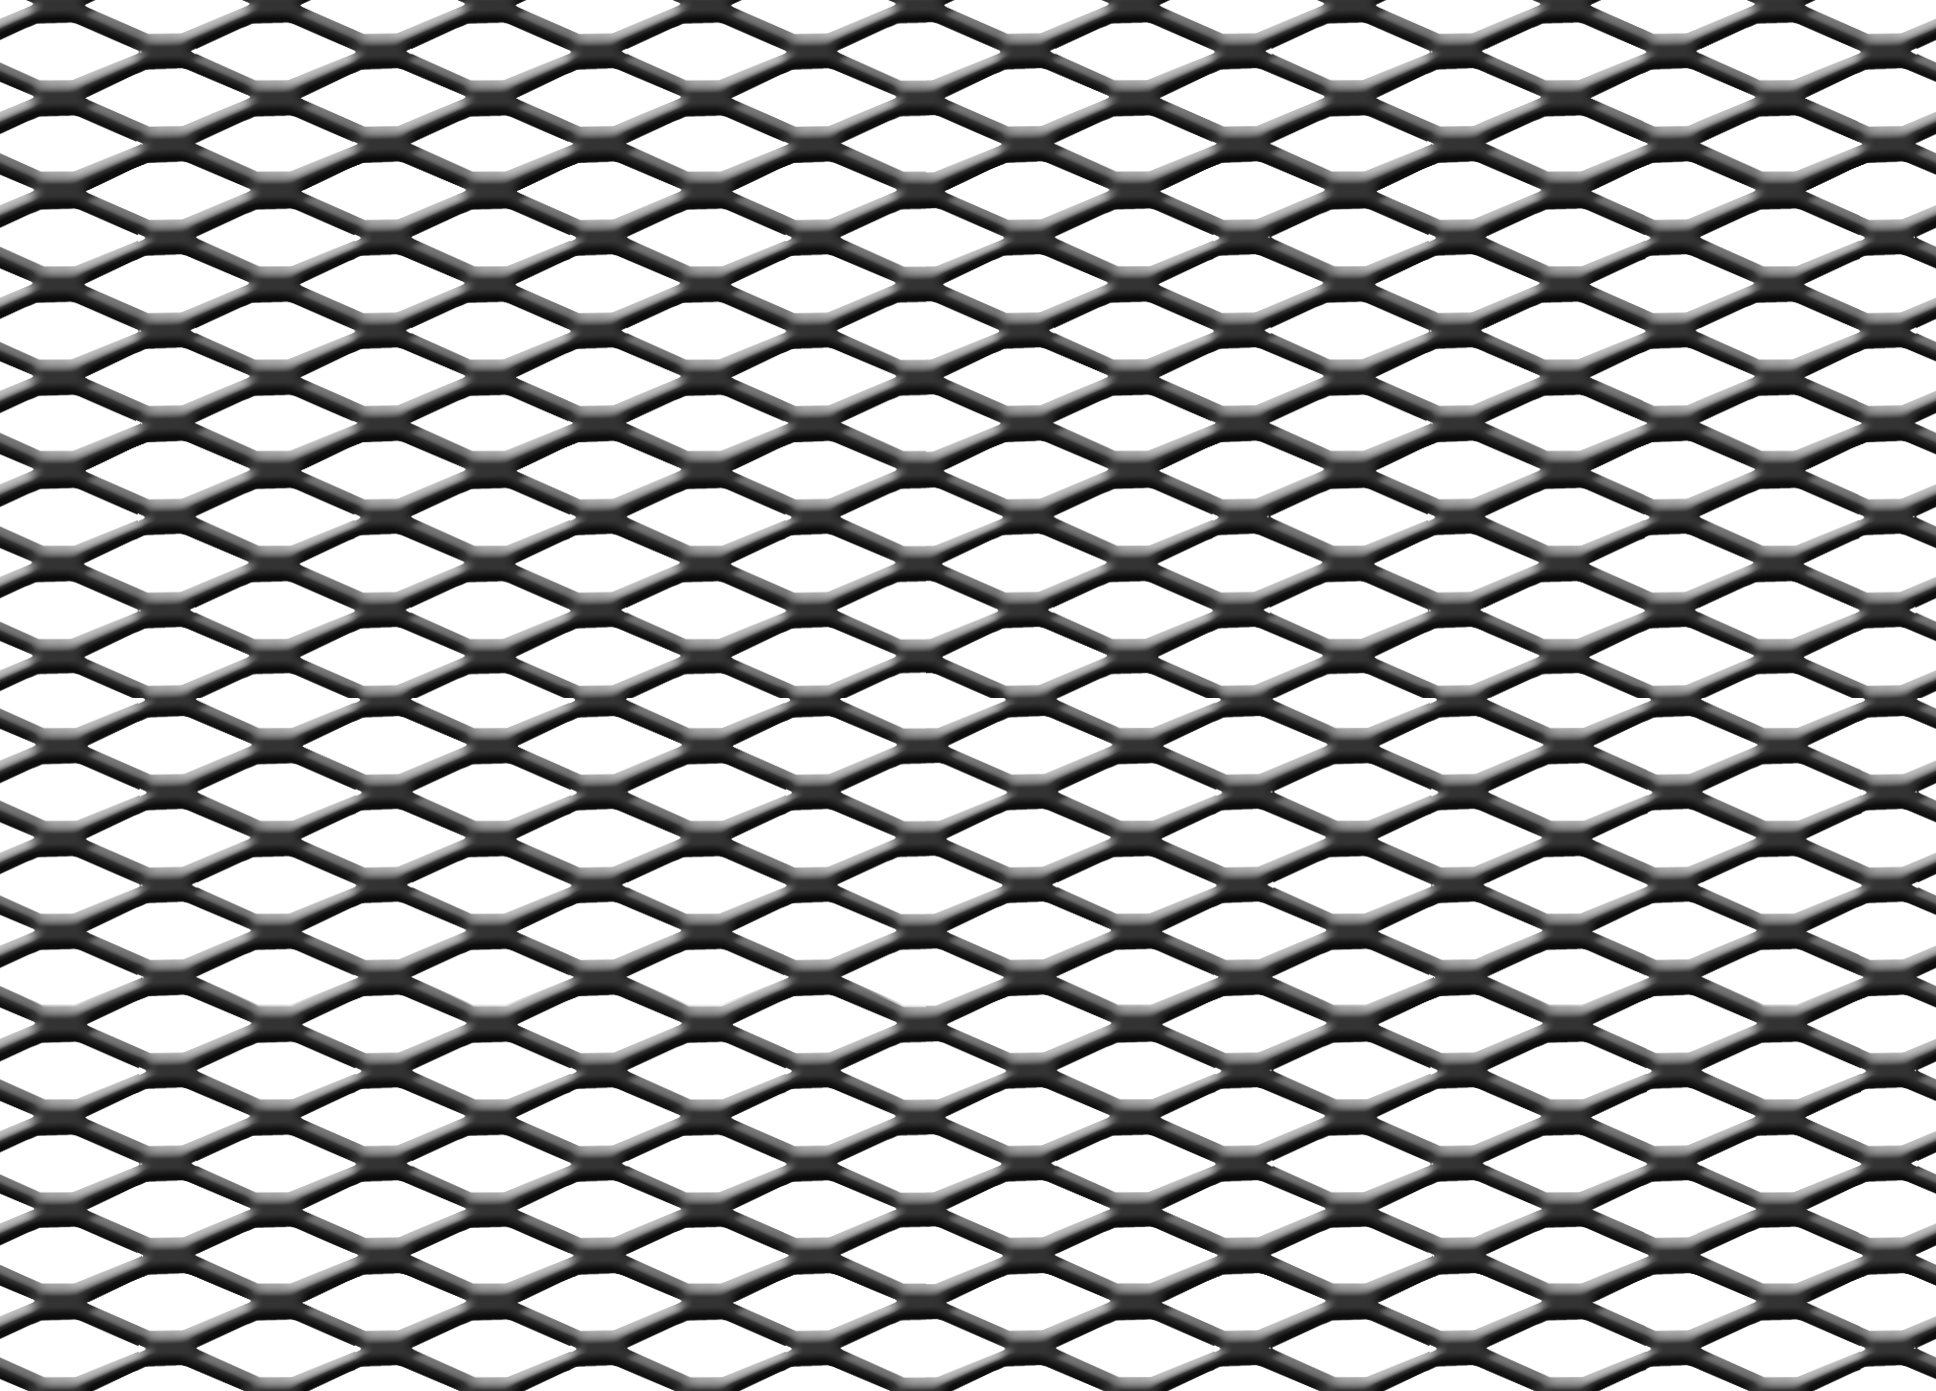 HD Metal Mesh Texture Png , Free Unlimited Download #236608.